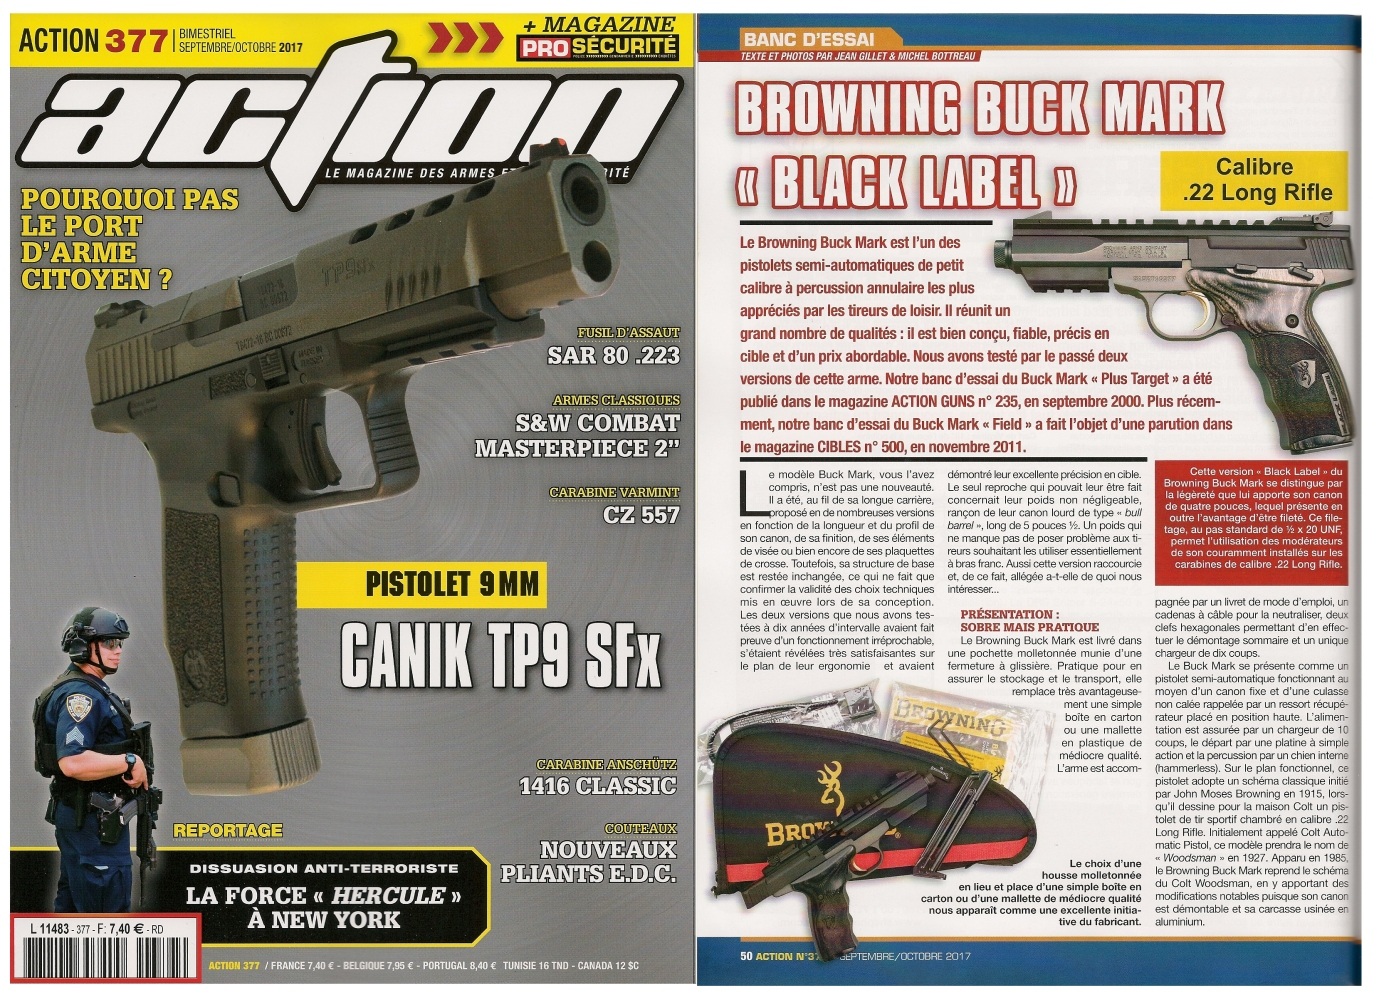 Le banc d'essai du pistolet Browning Buck Mark Black Label a été publié sur 6 pages dans le magazine Action n° 377 (septembre/octobre 2017).